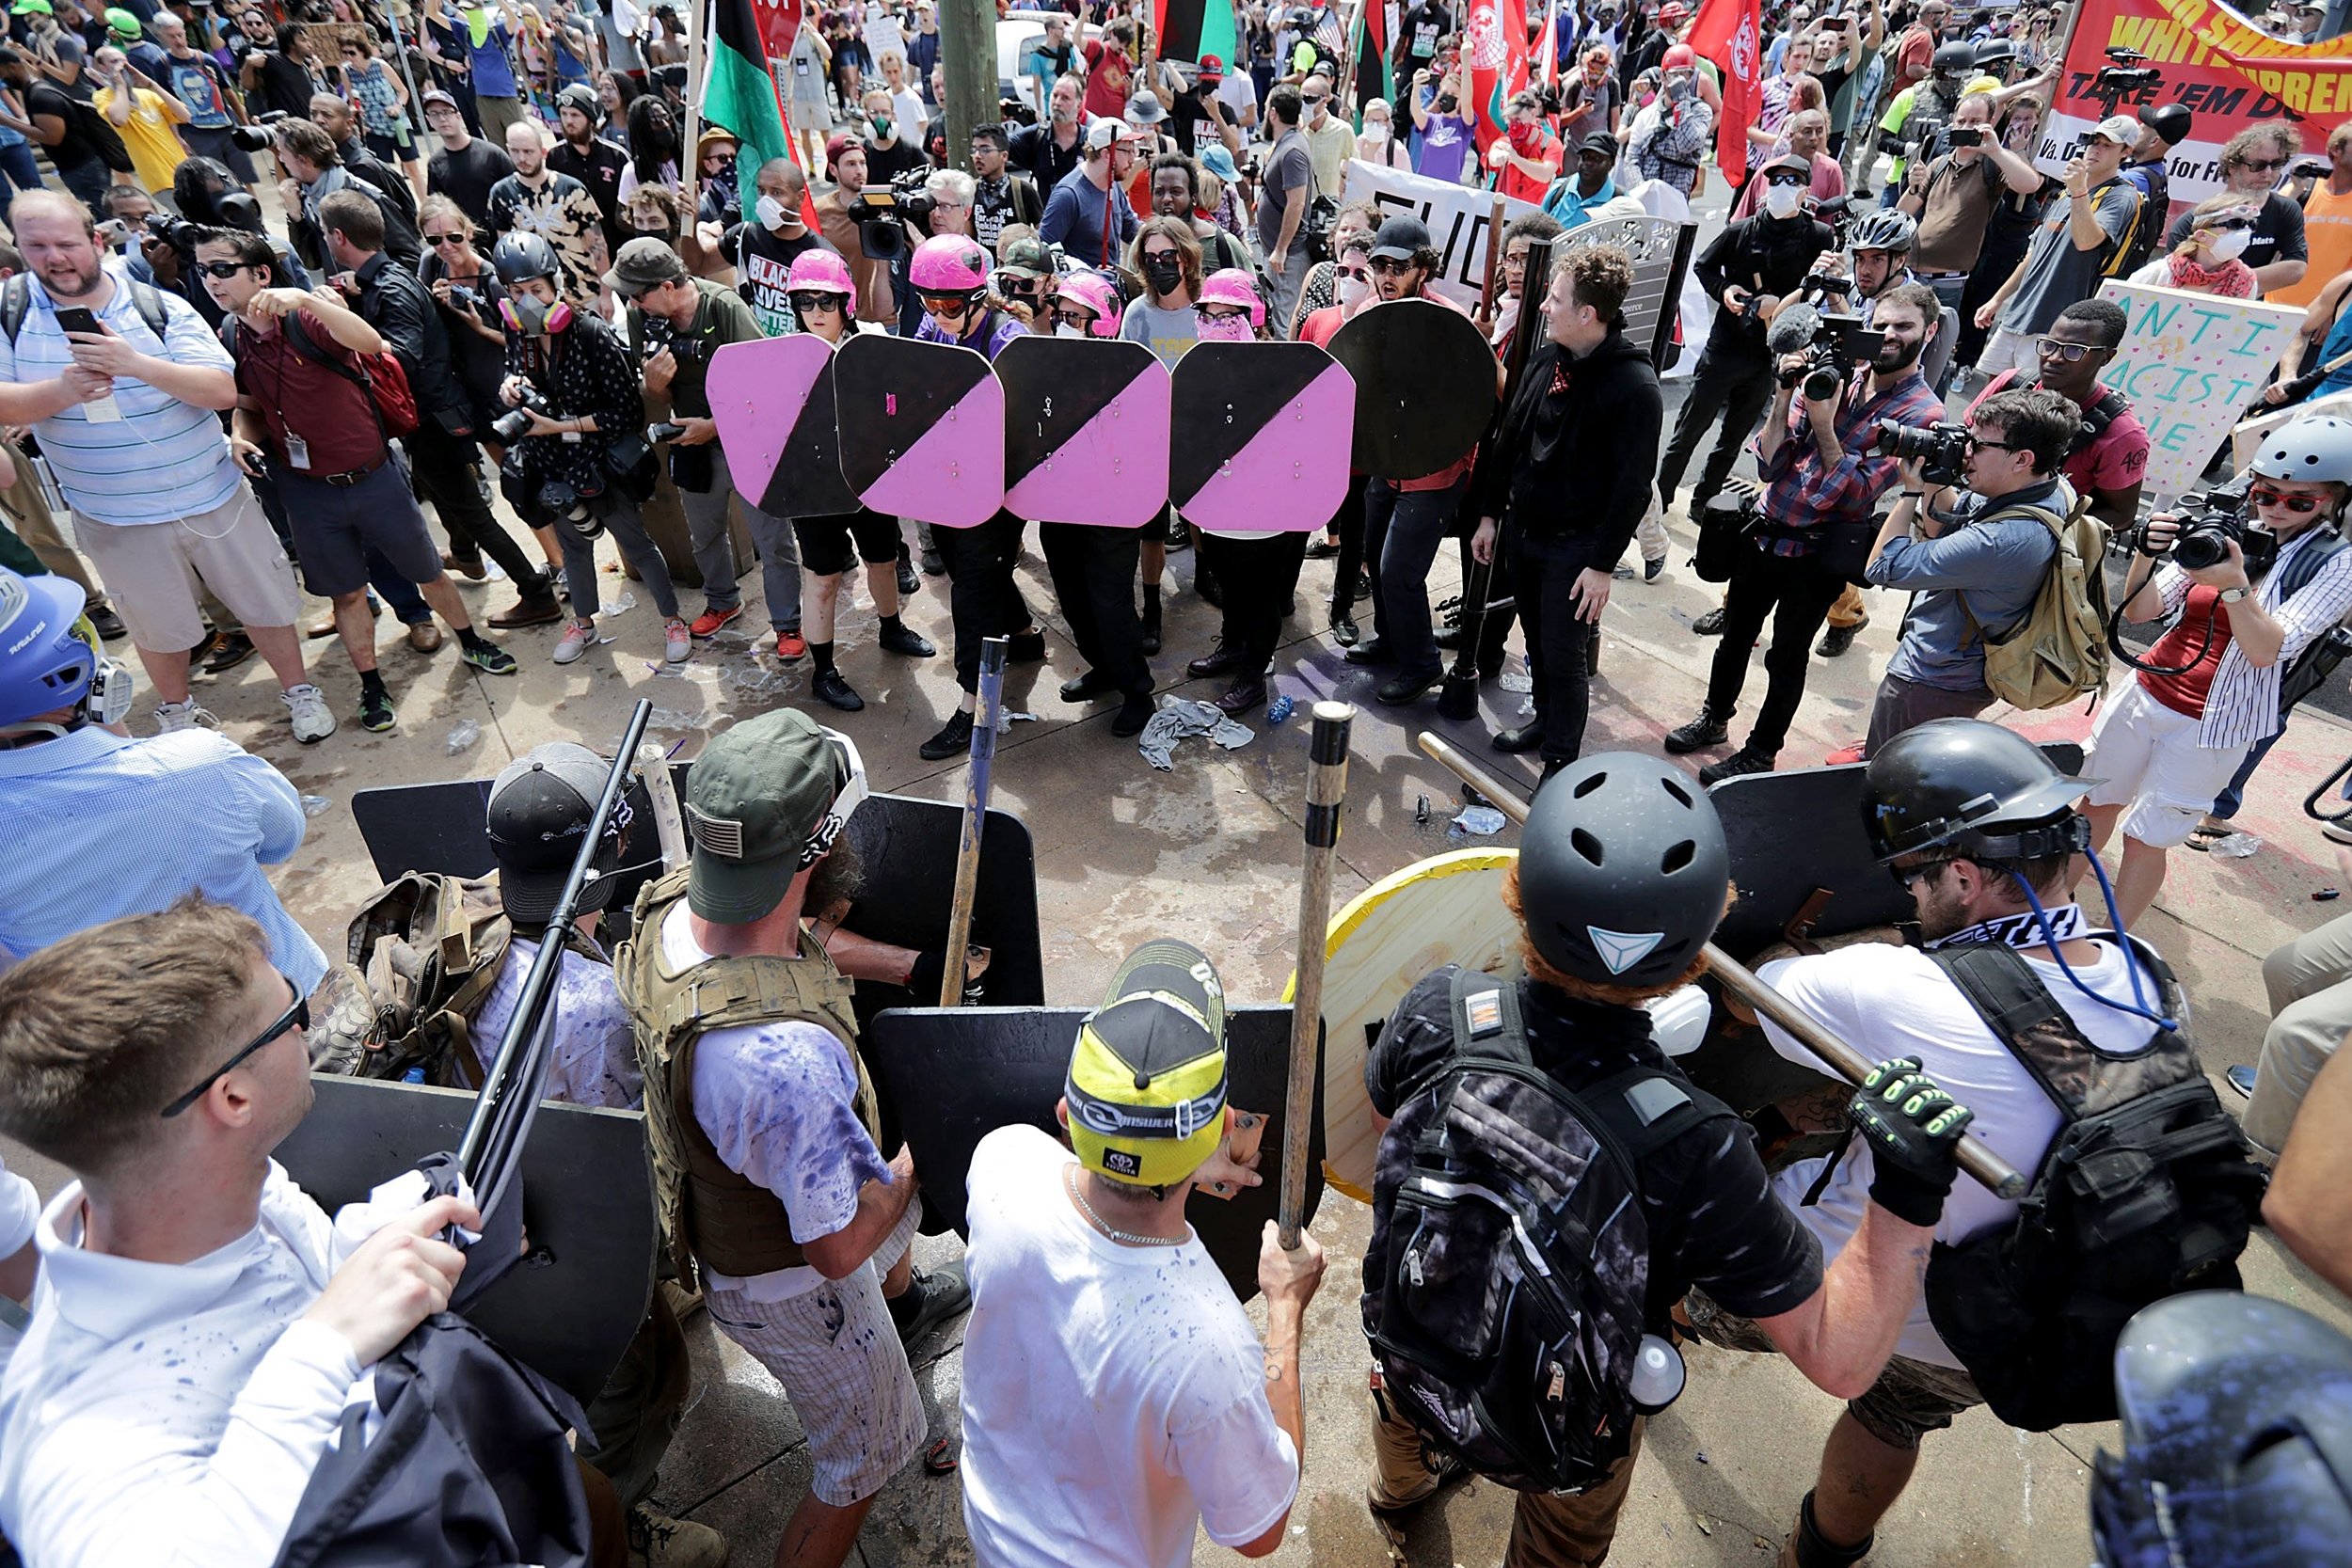 Image: Battle lines form between white nationalists, neo-Nazis and members of the